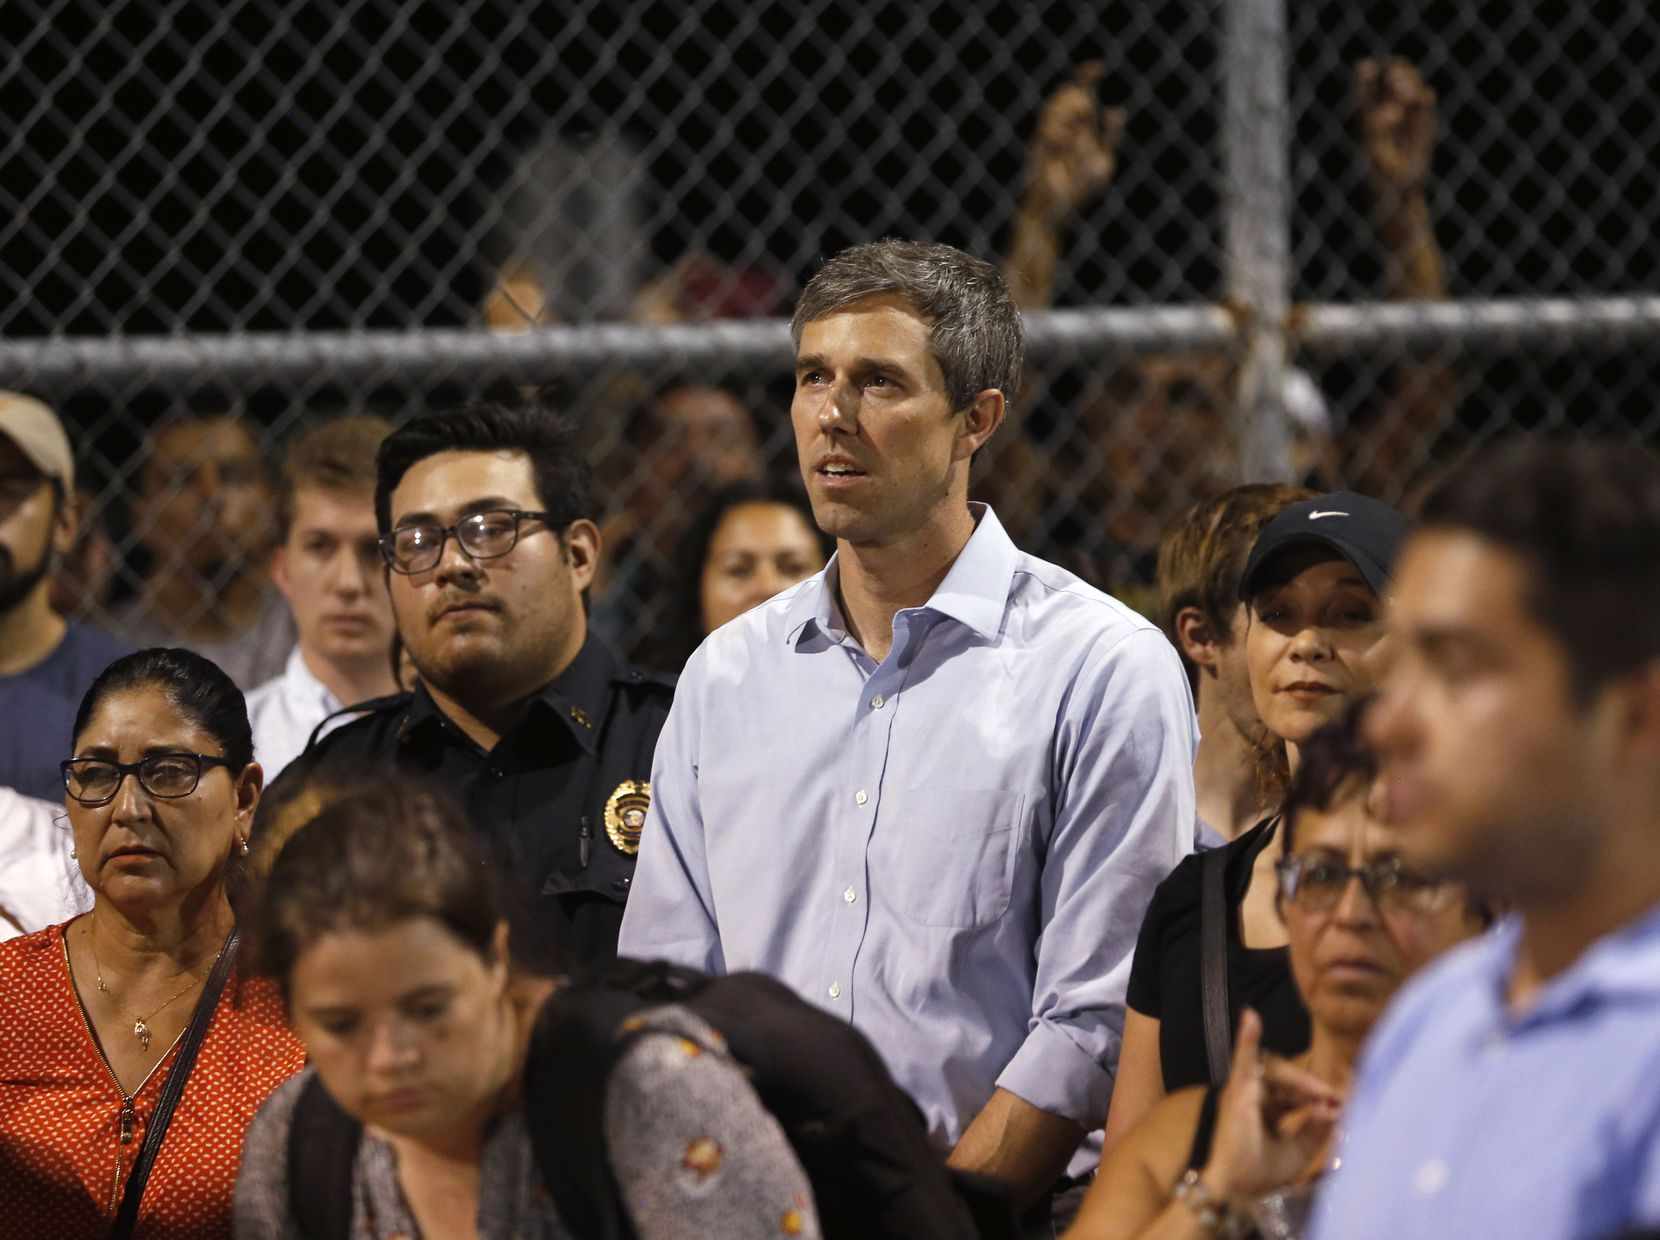 Democratic presidential candidate Beto O'Rourke listened during a vigil at Ponder park in El Paso, Texas on Sunday, August 4, 2019. Less than a mile away is the scene where 20 people were shot and killed and 26 more were wounded at a Walmart in El Paso on Saturday. (Vernon Bryant/The Dallas Morning News)